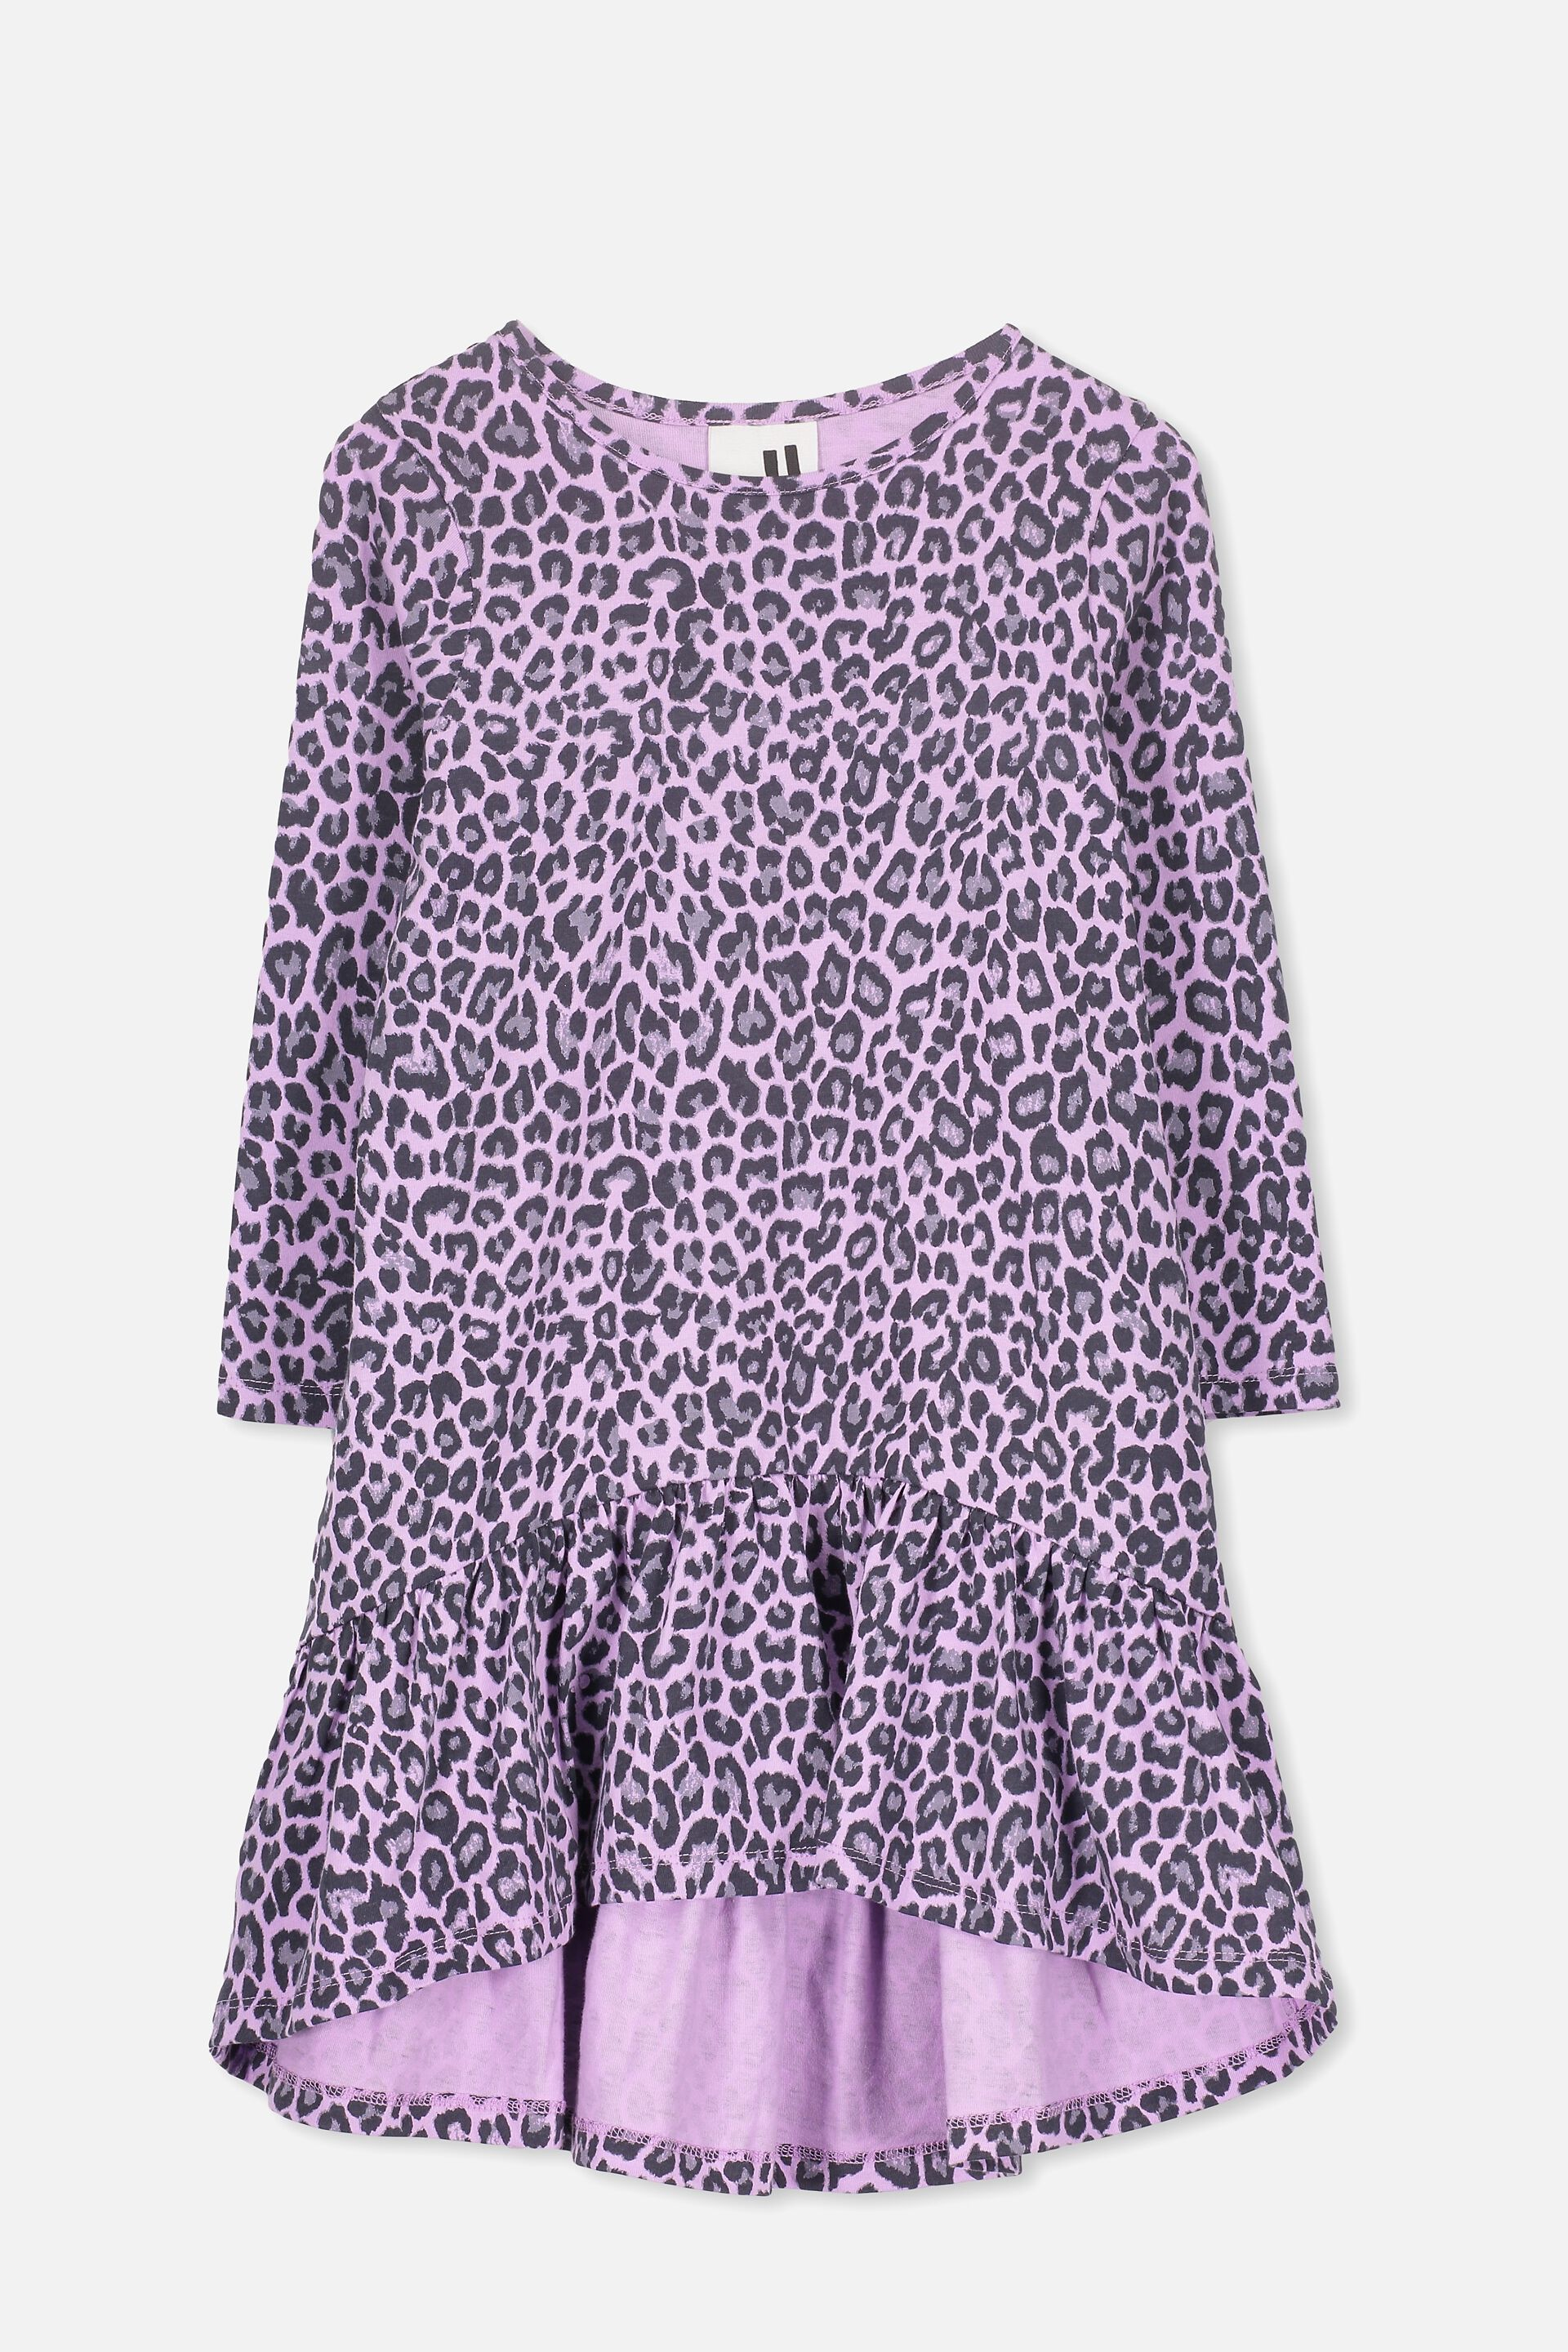 Mother & Kids 2018 Casual Princess Kids Baby Girls Unicorn Cotton Dress Long Sleeves O-neck Floral Party Dresses Straight Fall Clothes 6m-7y